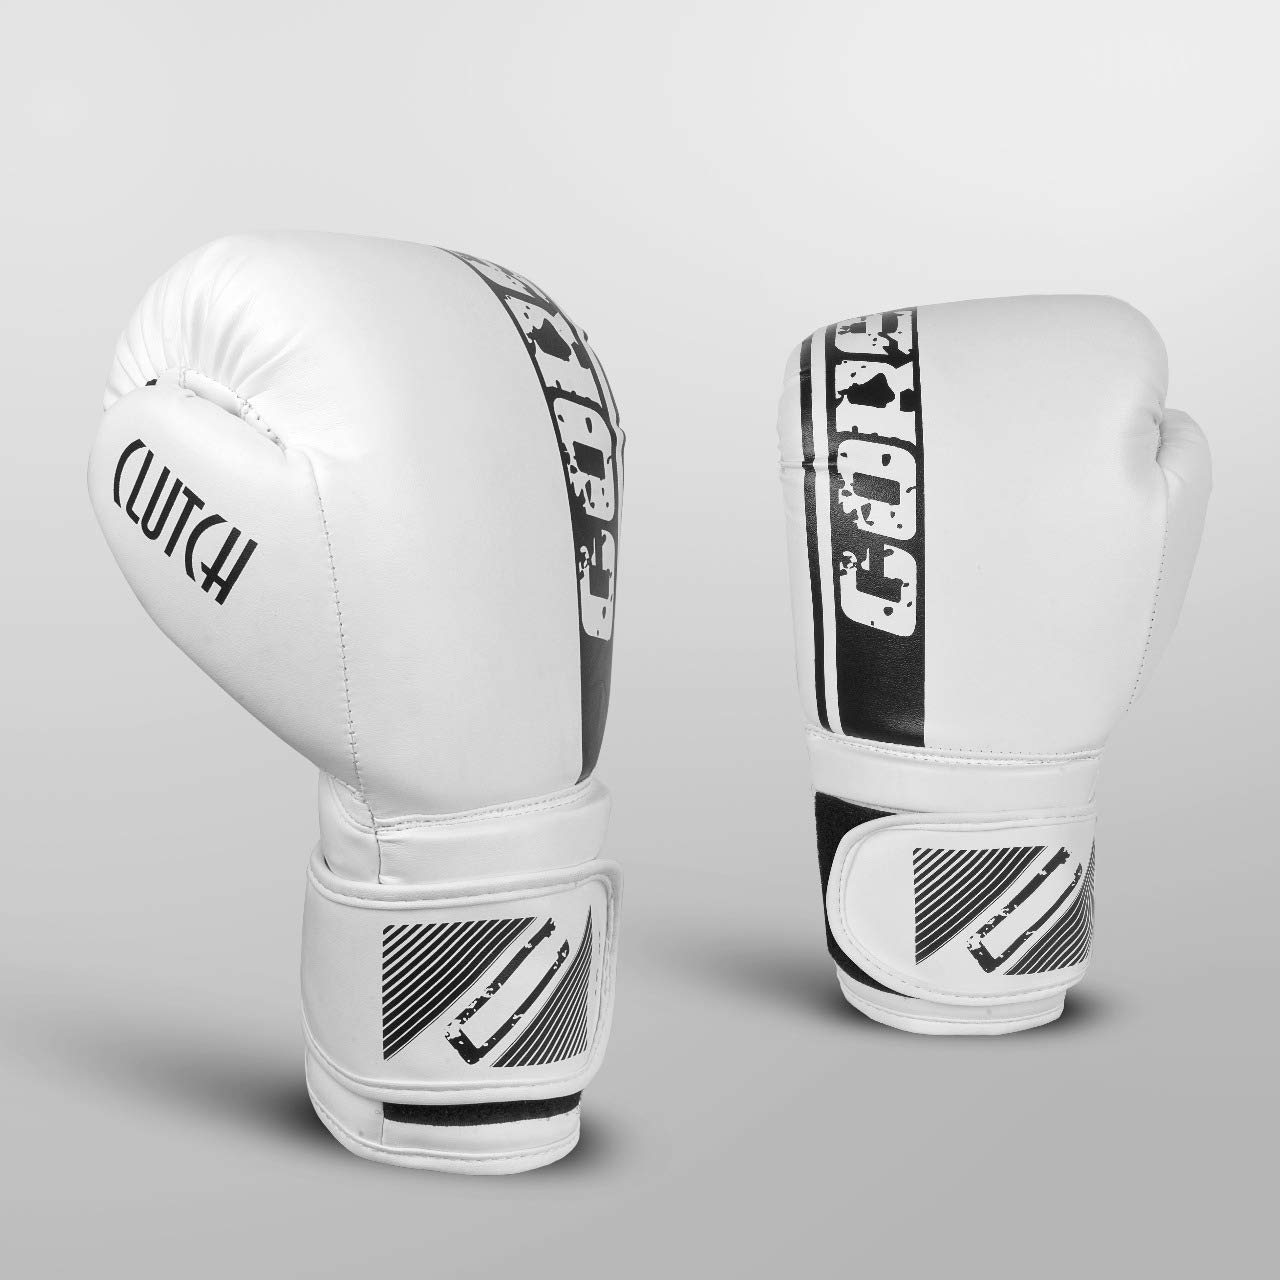 CORE SPORTS Boxing Gloves for Men /& Women Training Sparring Kickboxing Leather UFC MMA Muay Thai Pro Punching Fight Heavy Bag Mitts